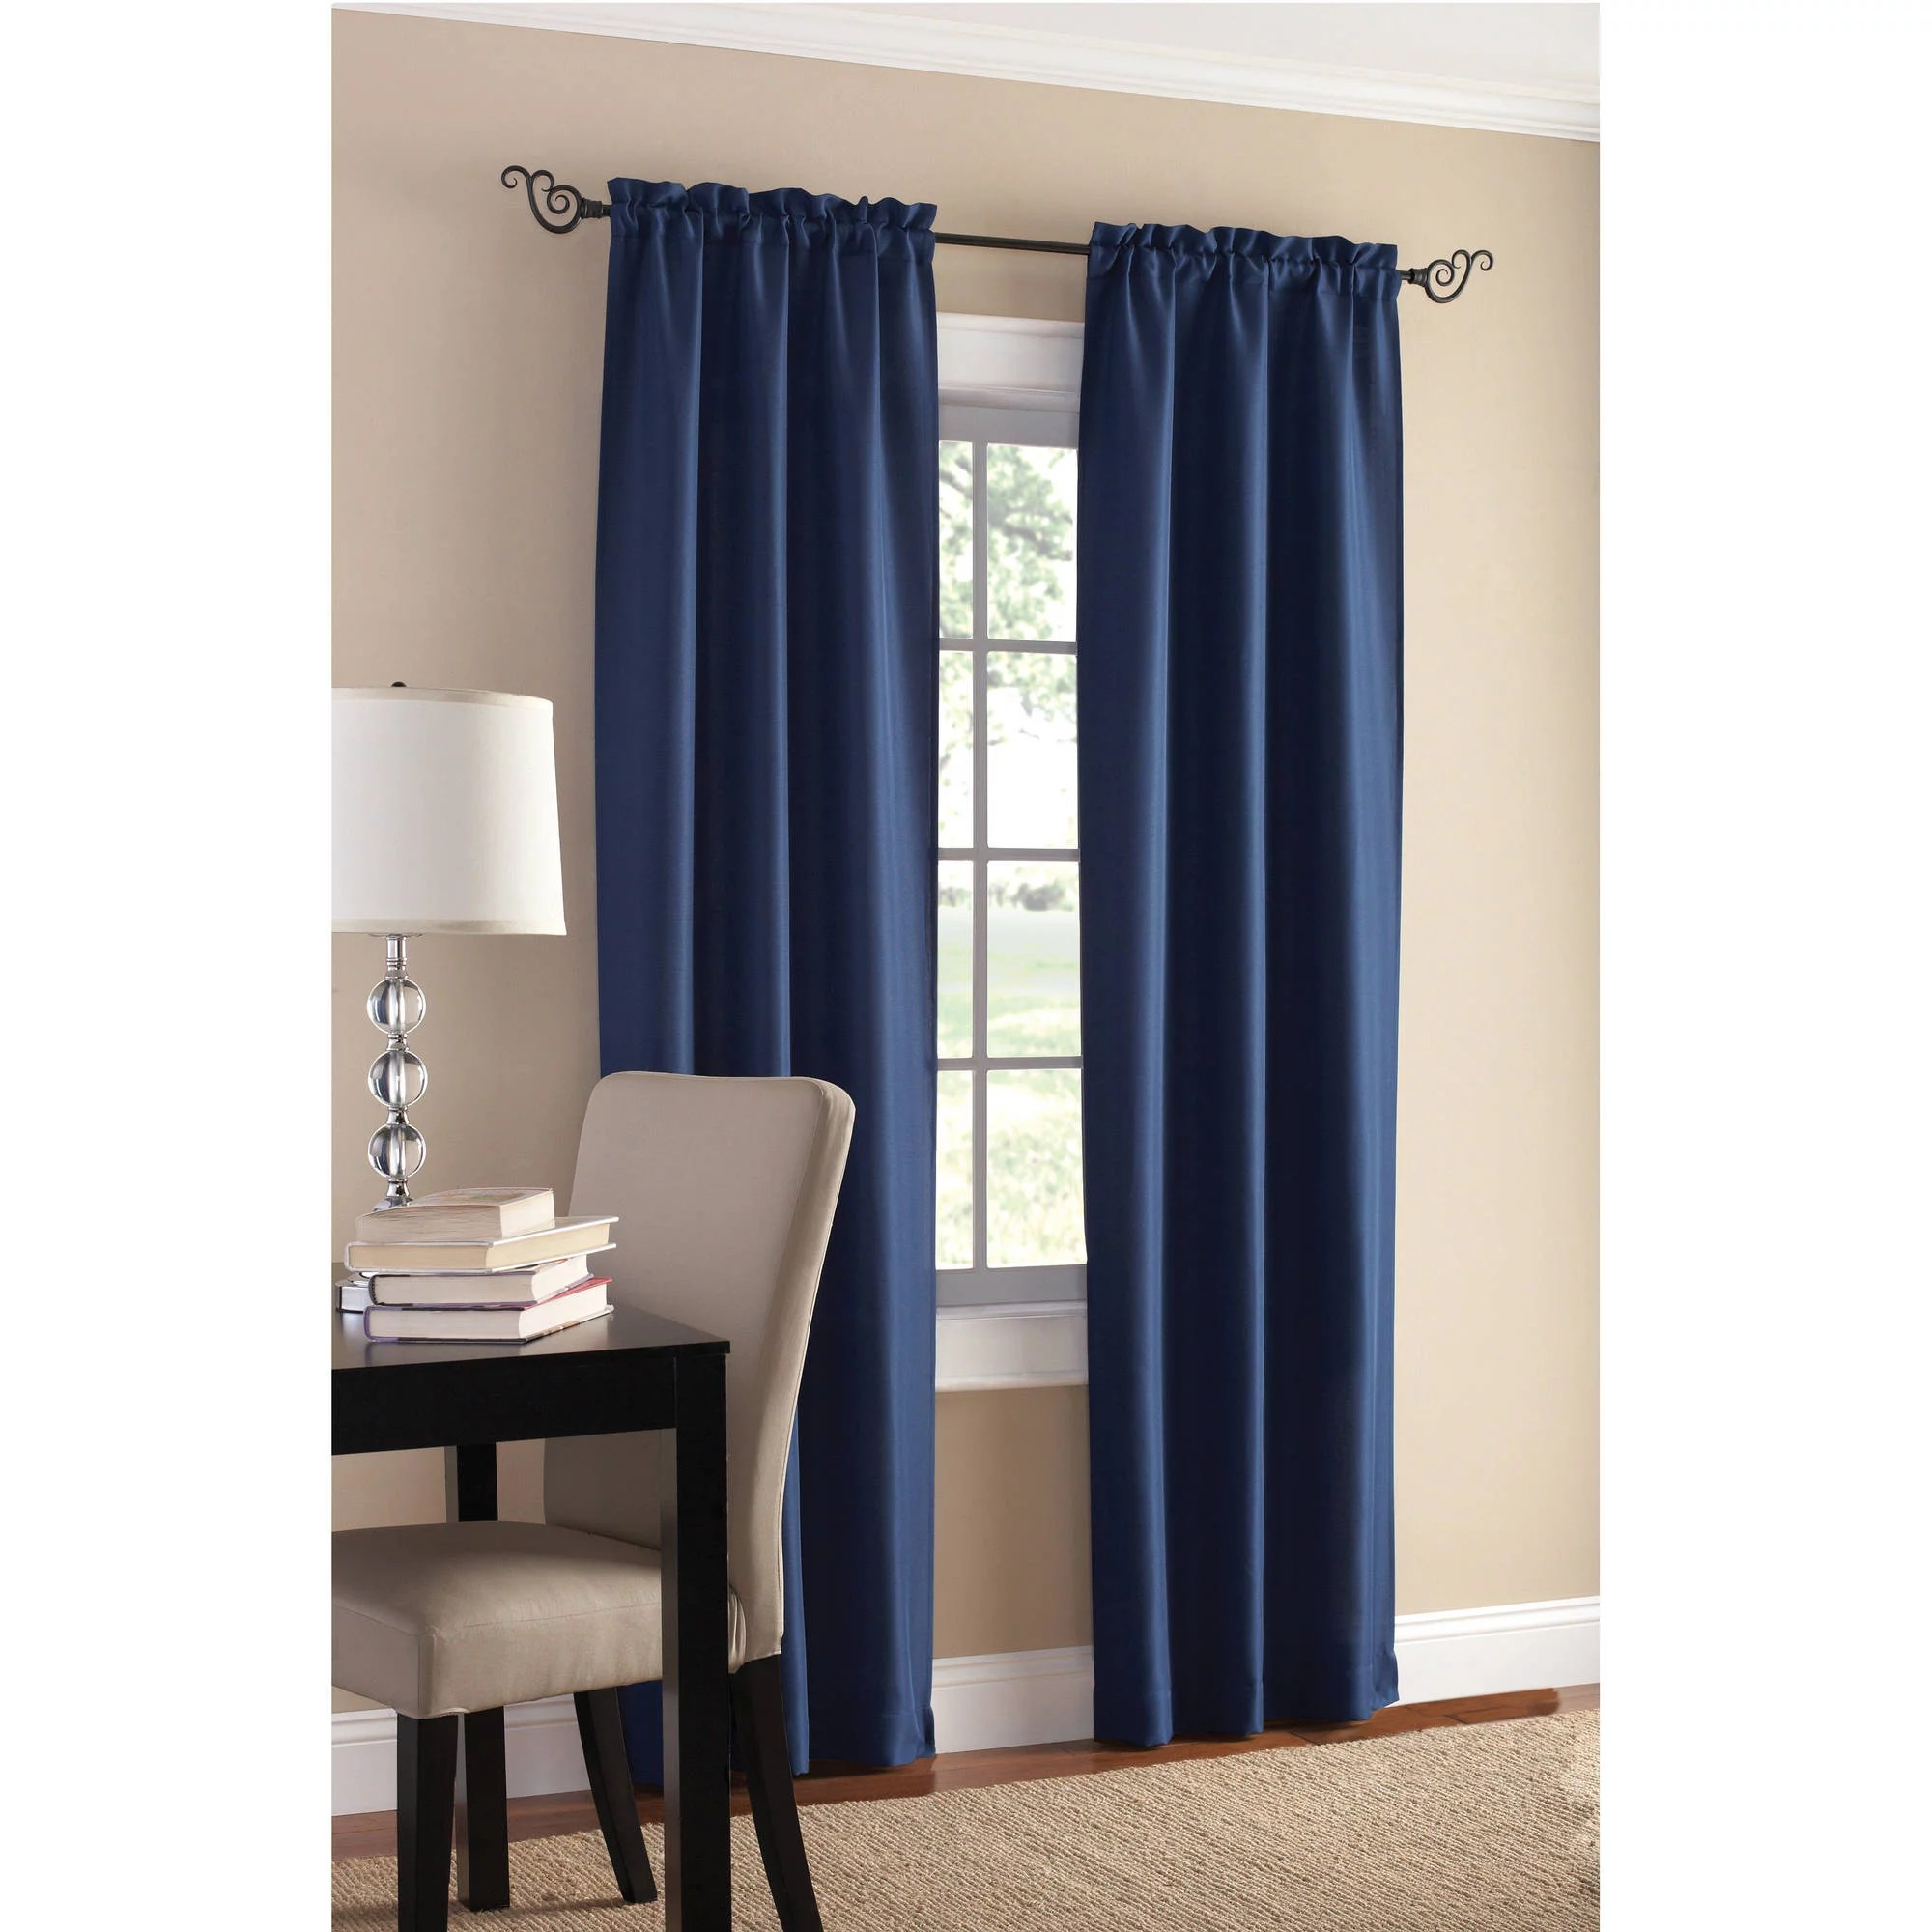 Closet Beads Curtains Closet Curtains Walmart Roselawnlutheran